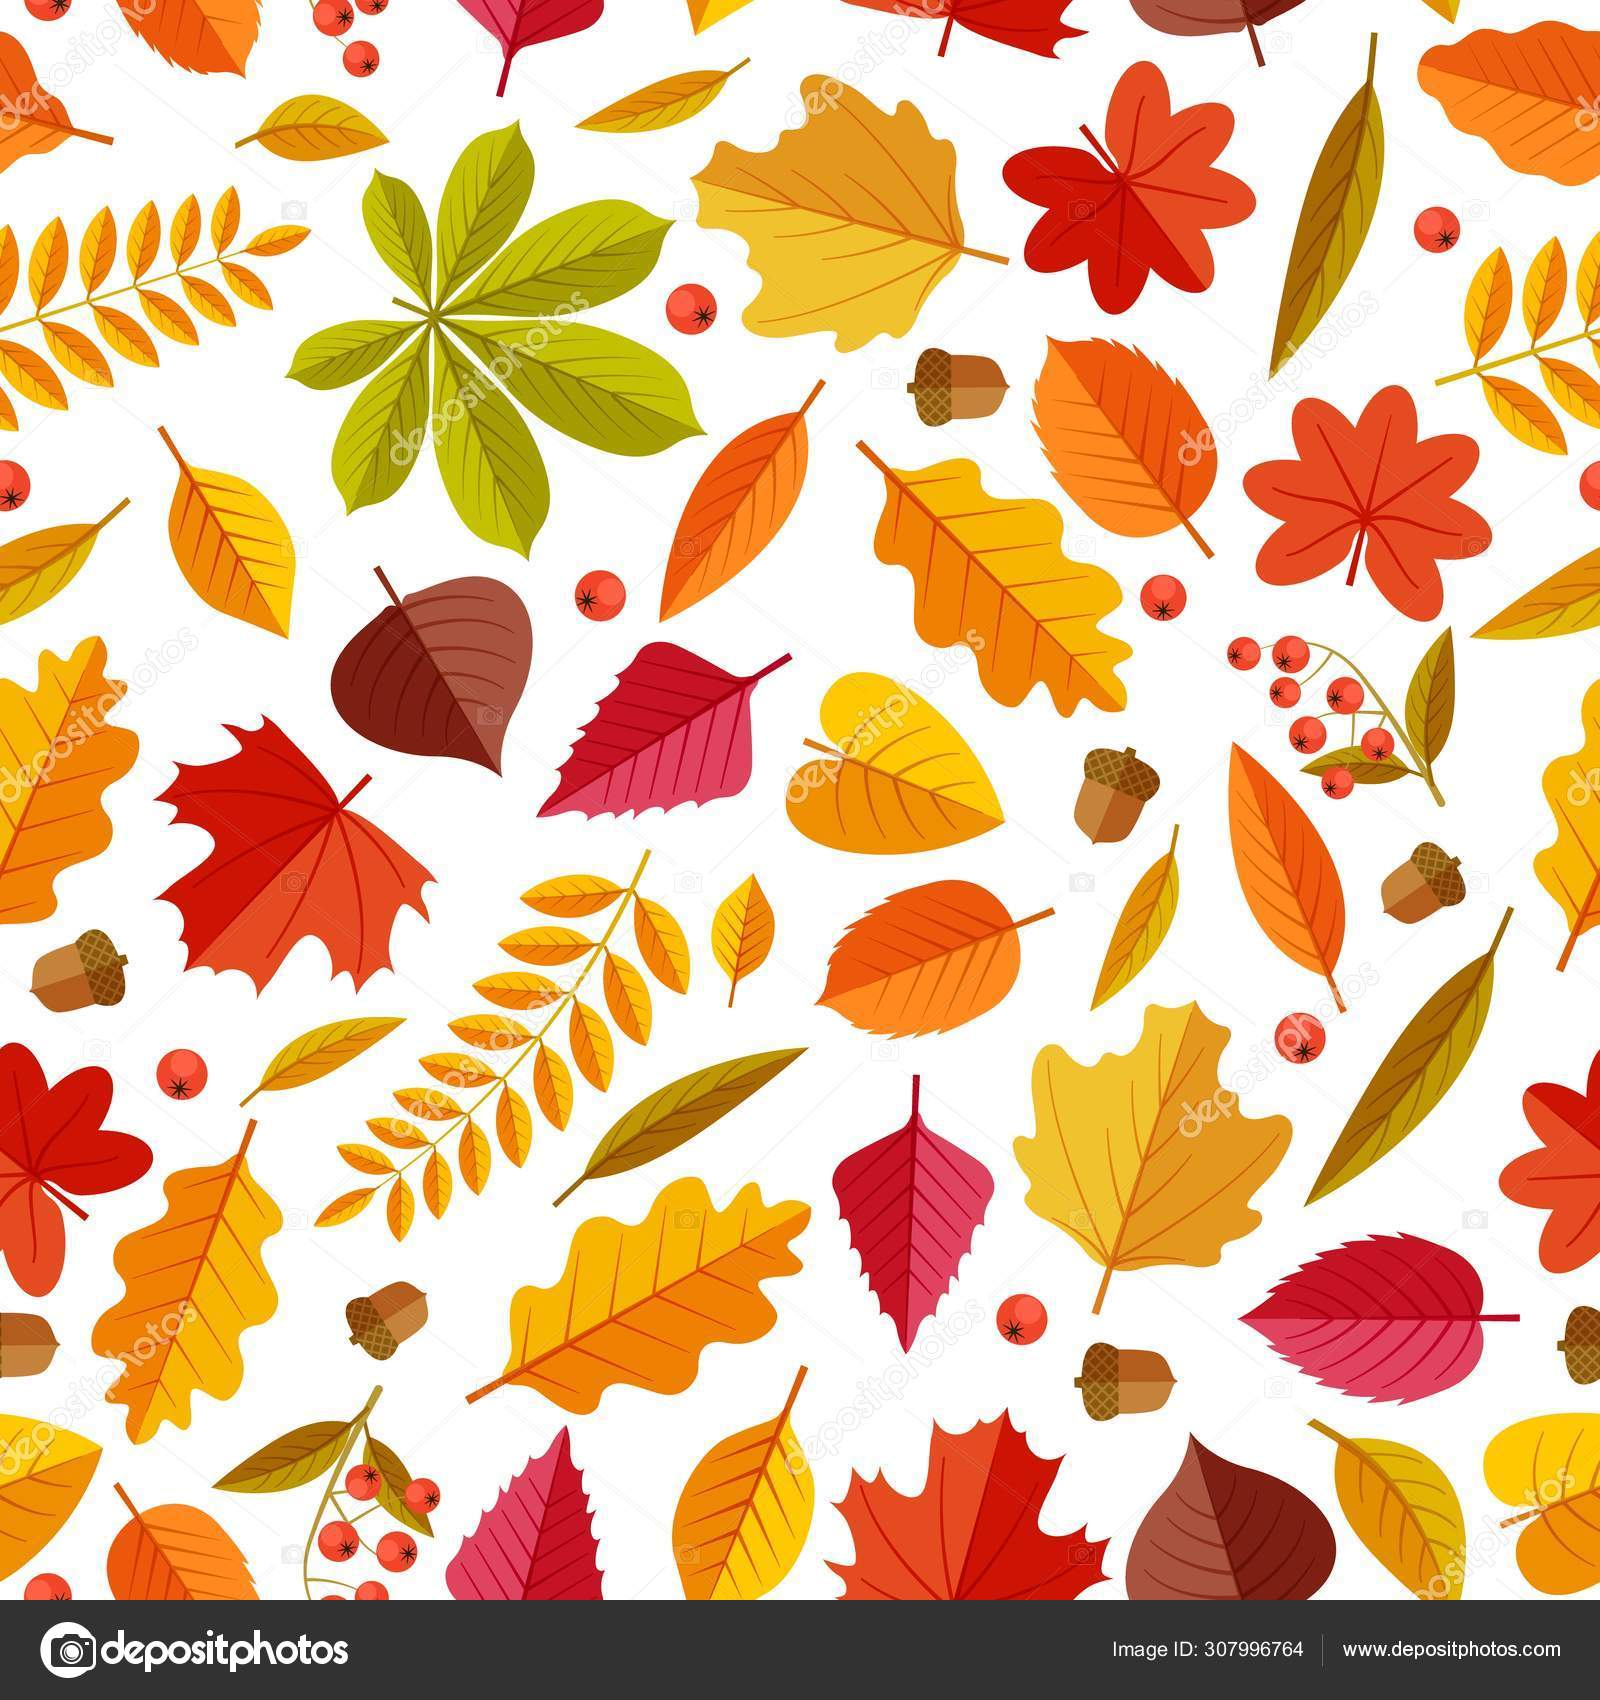 Autumn Leaves Pattern Abstract Repeating Fall Leaf